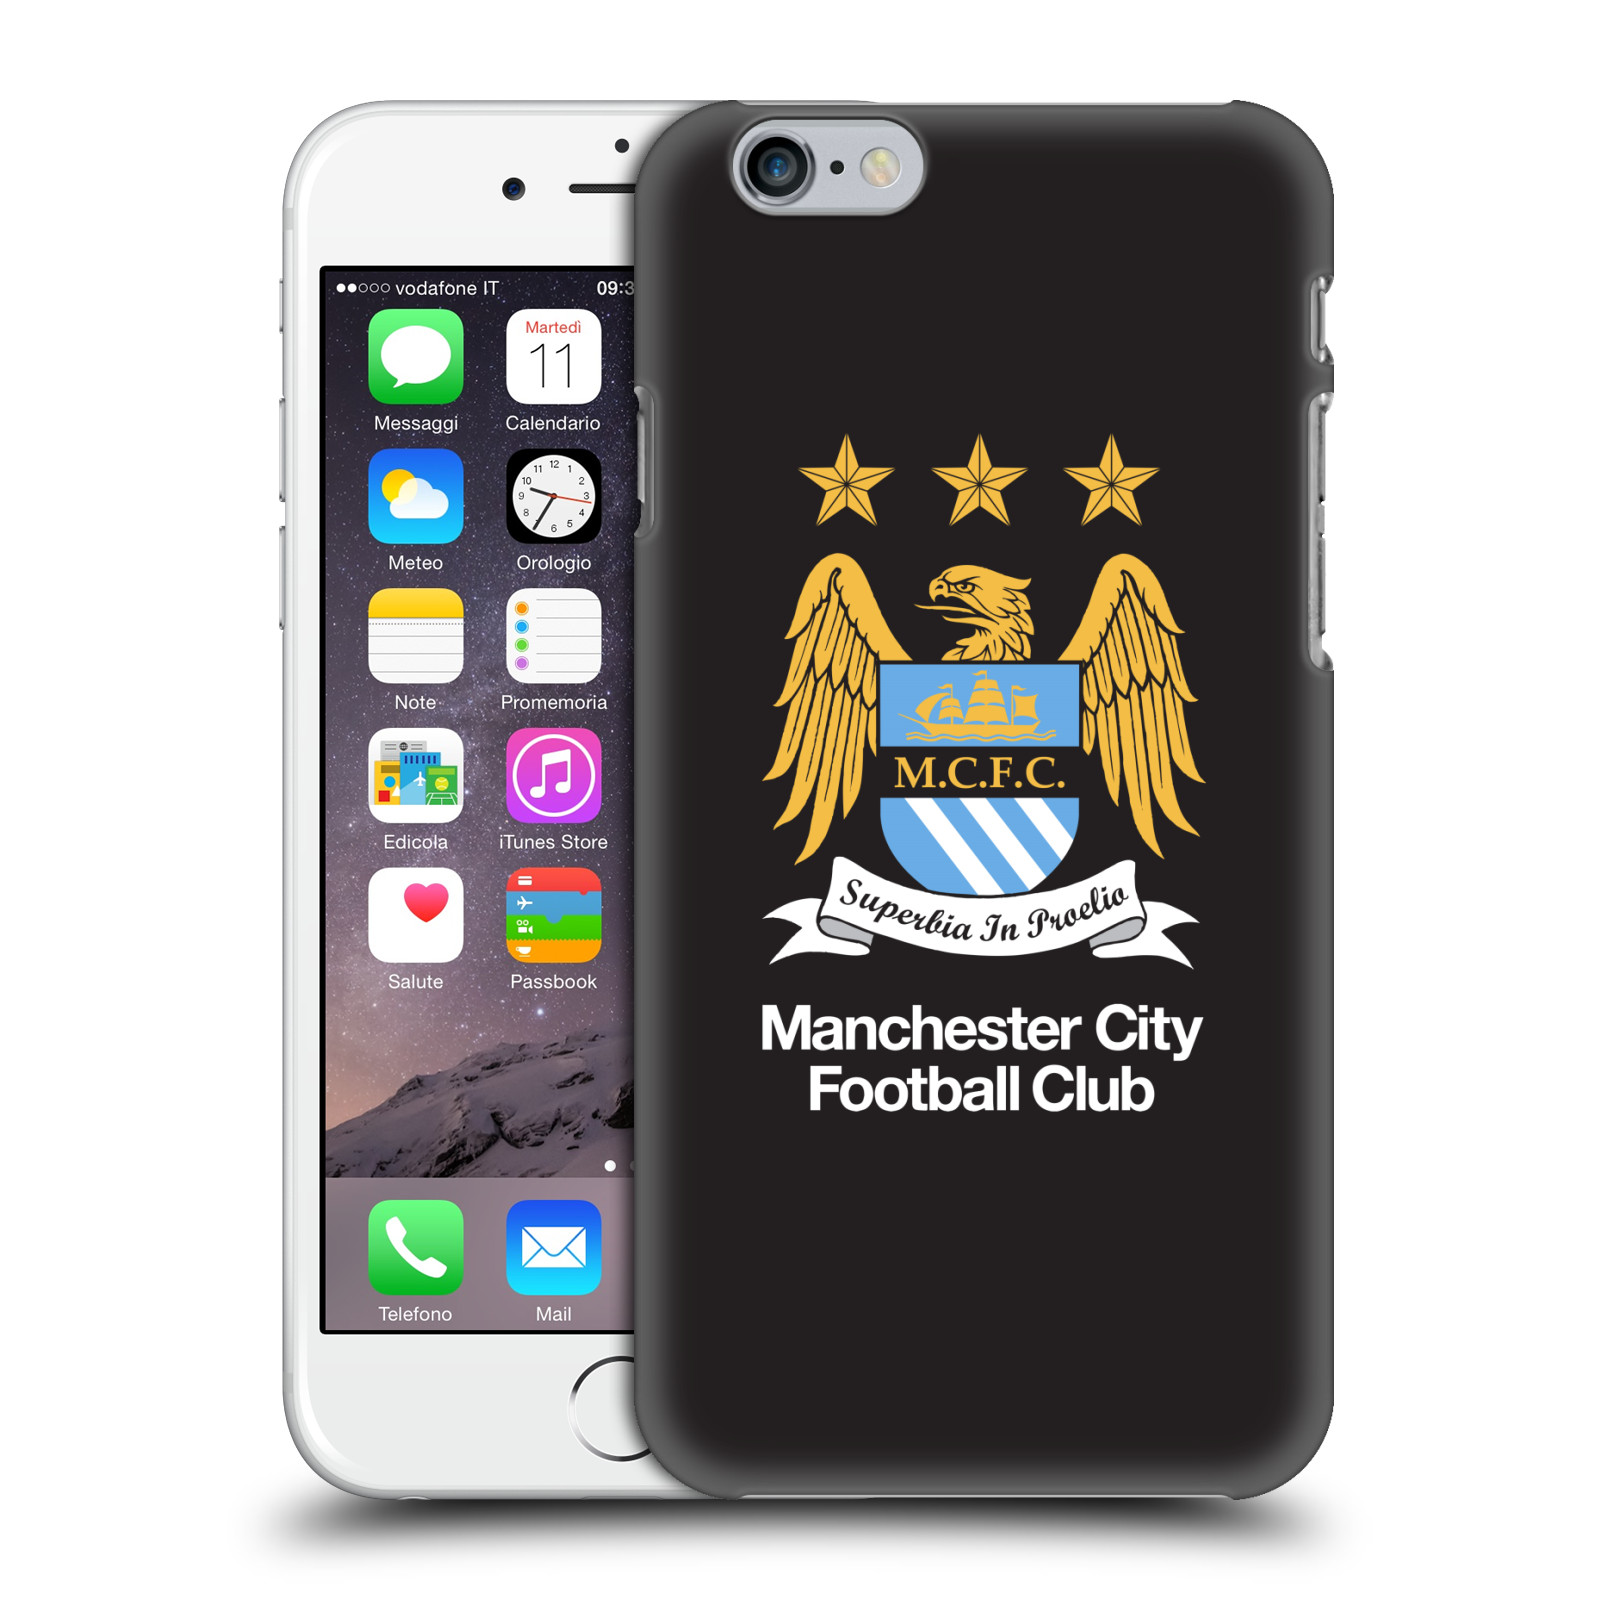 Manchester City FC MCFC Crest-Full Colour on Black